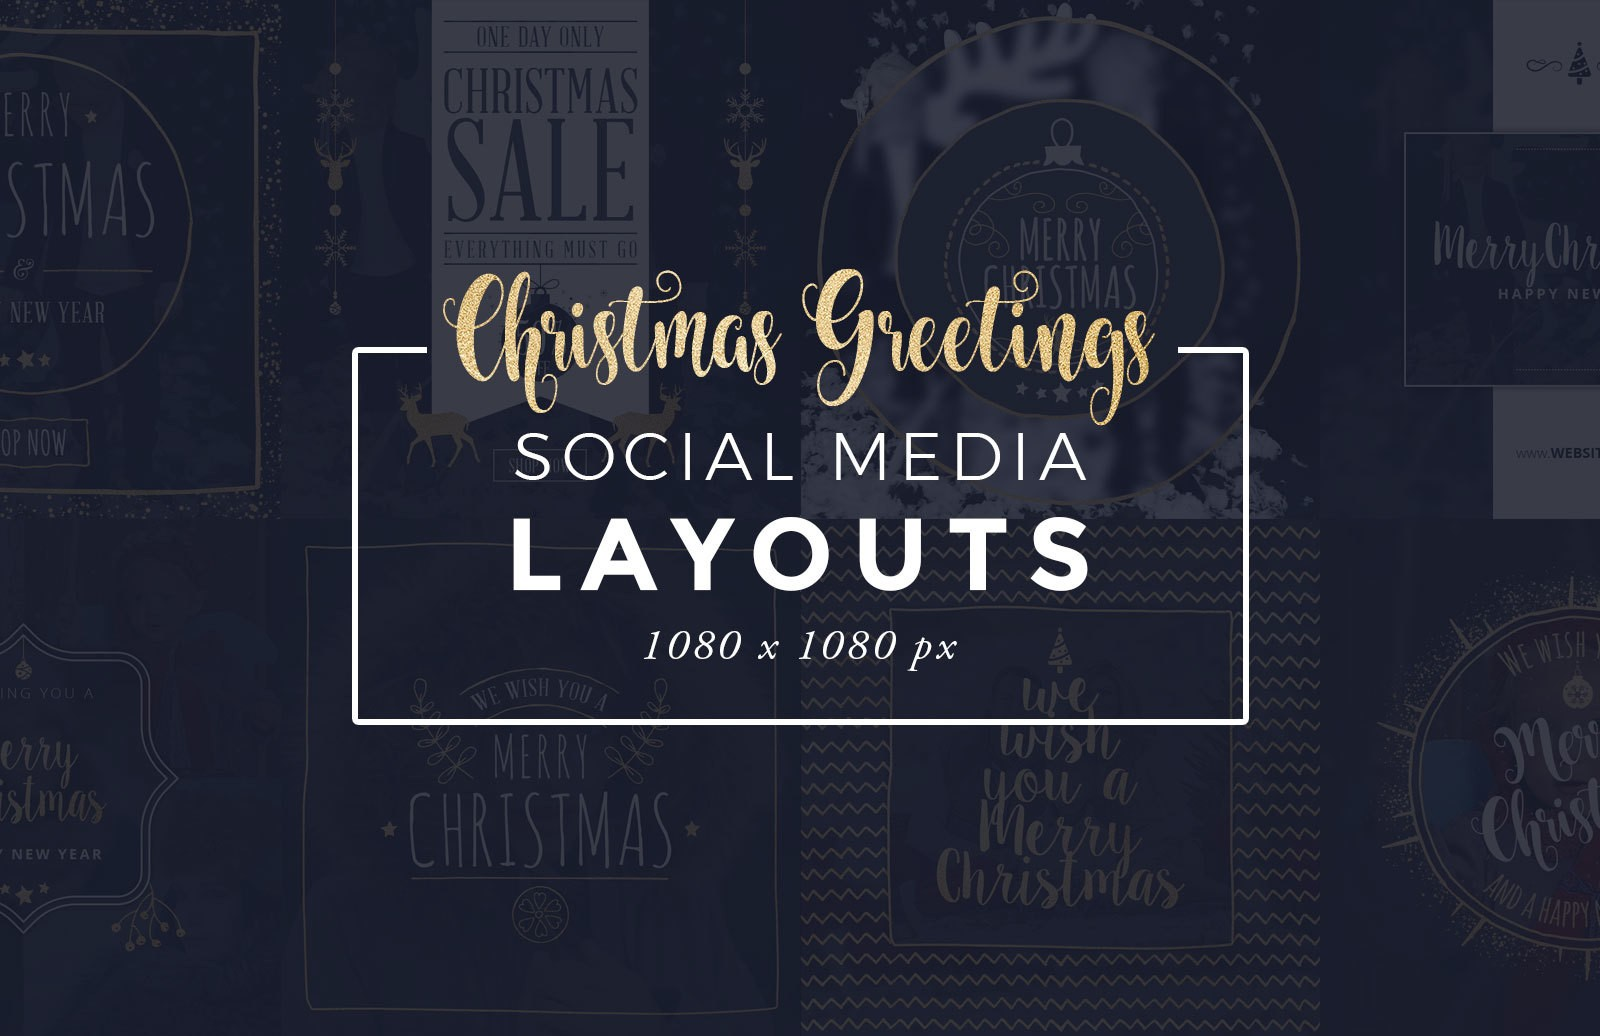 Christmas Greetings Social Media Layouts